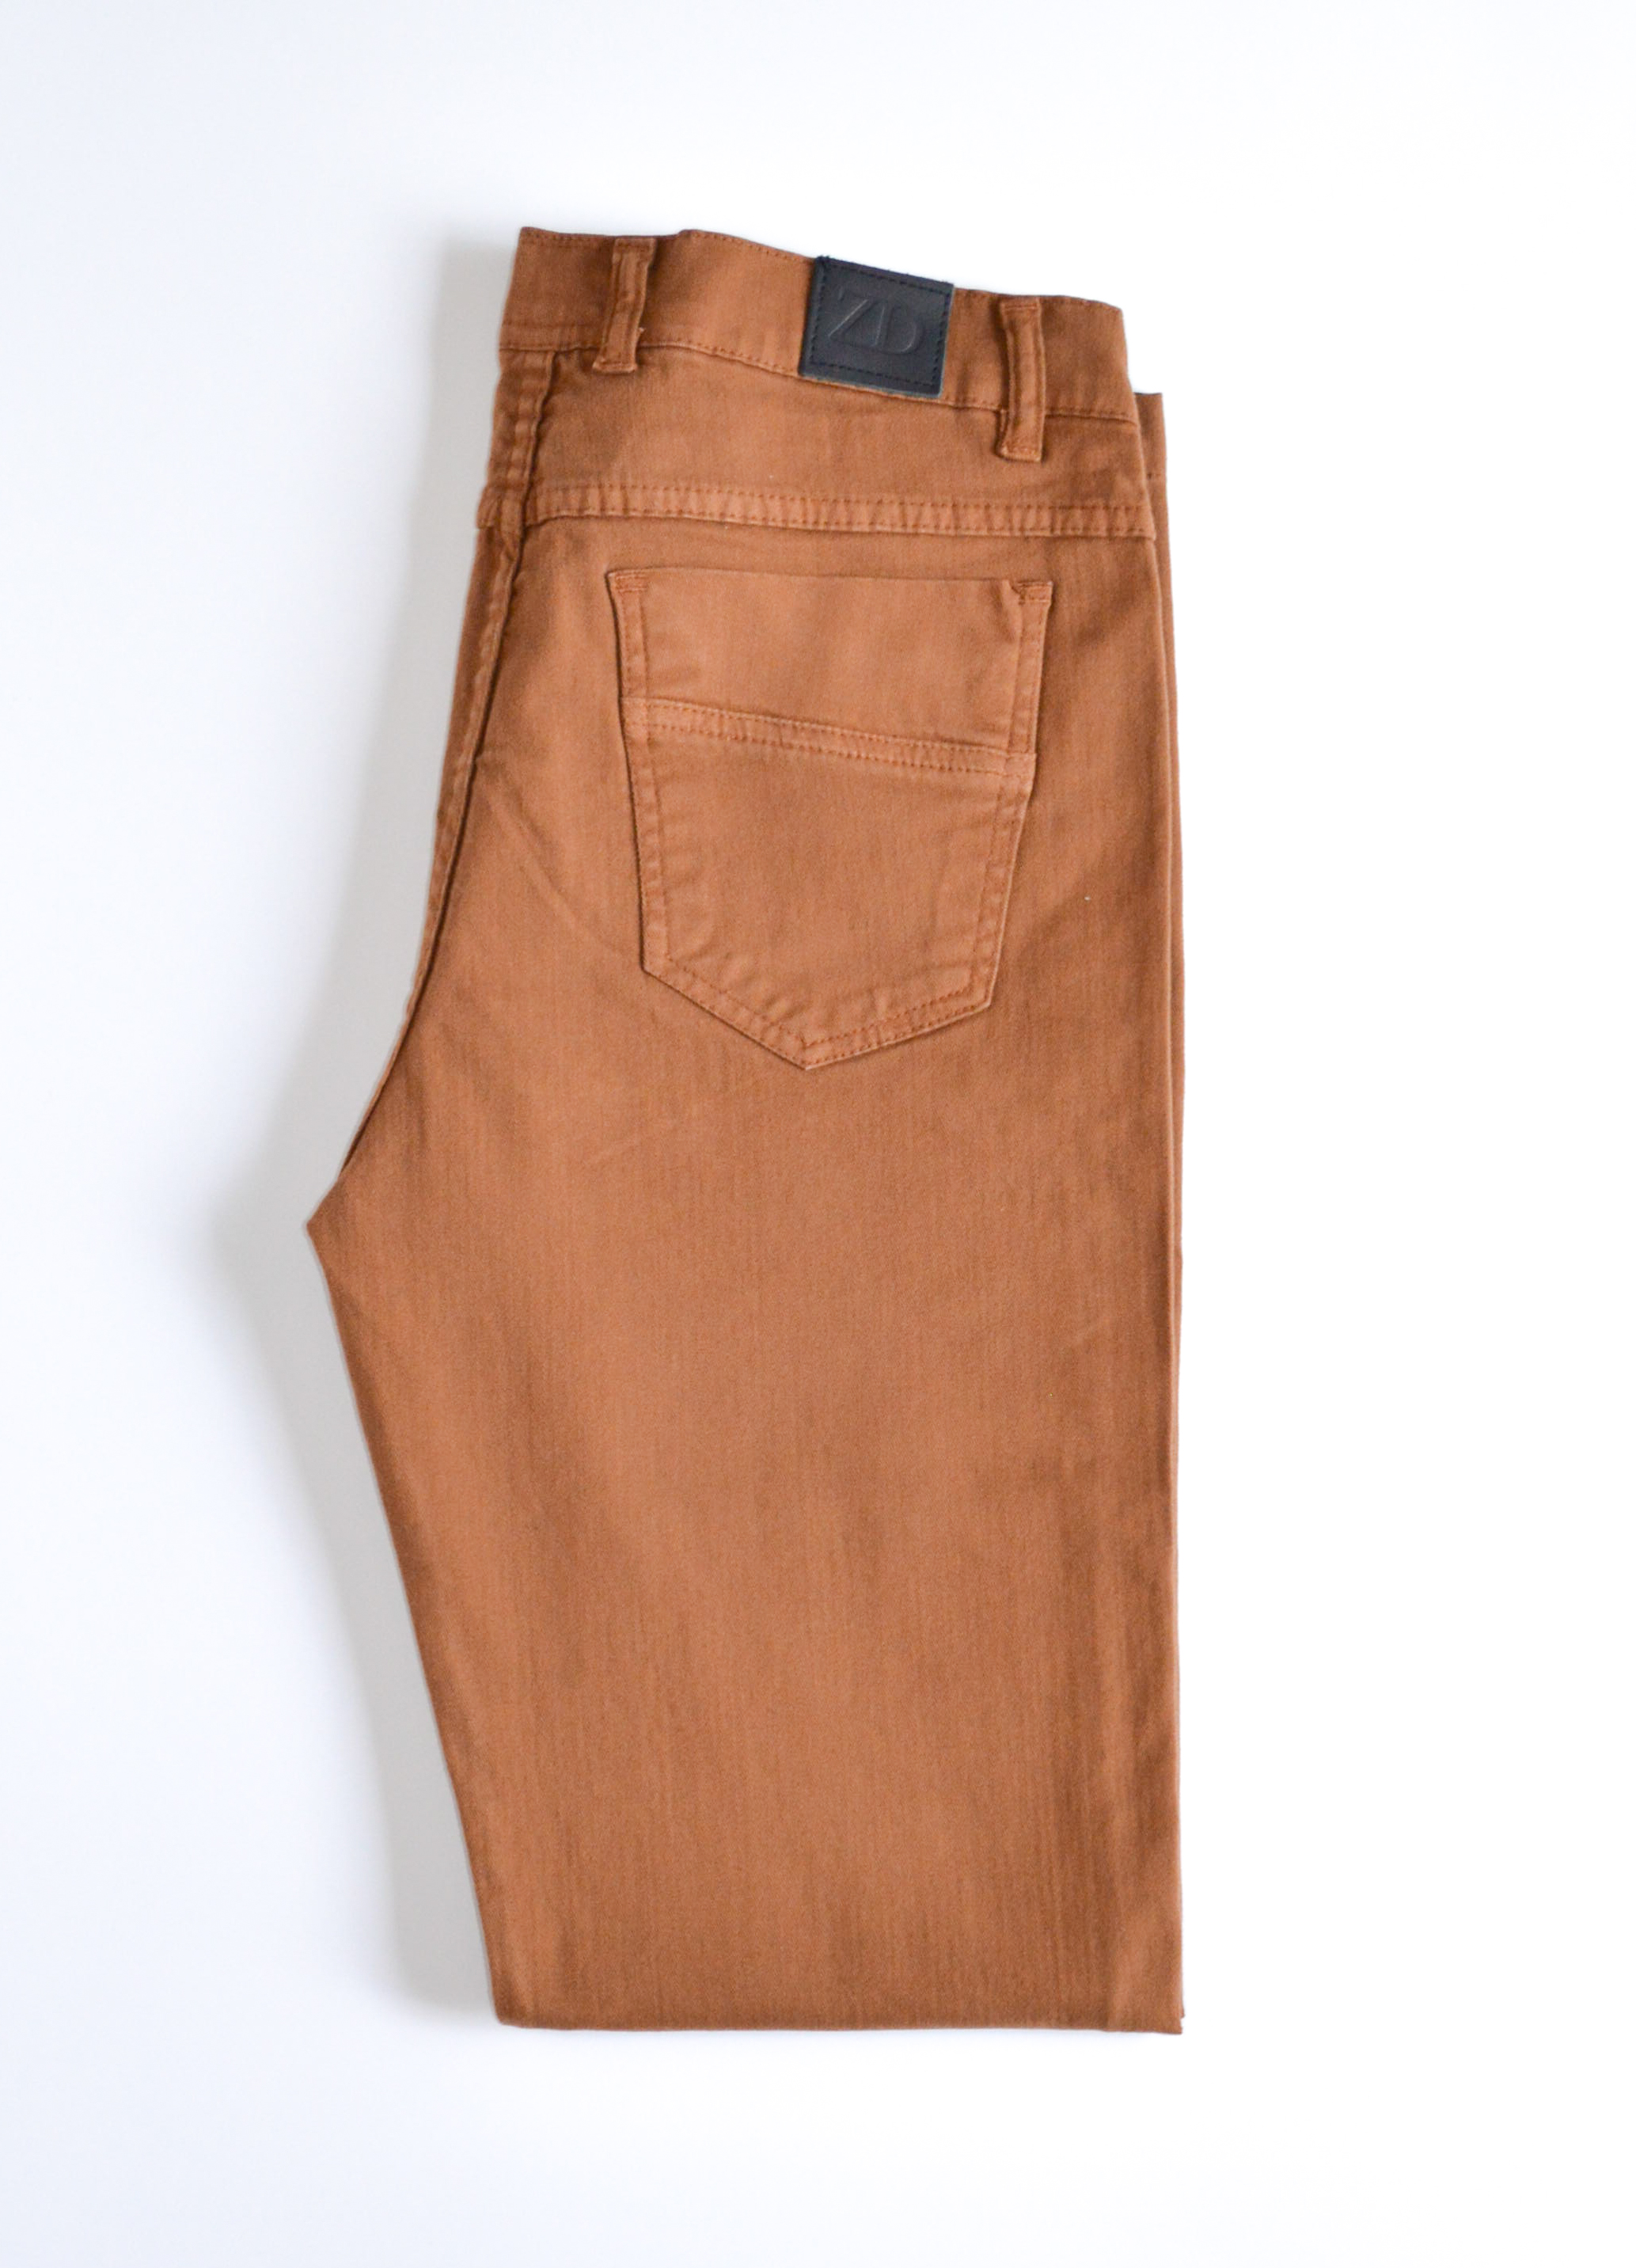 Jeans Caramelo